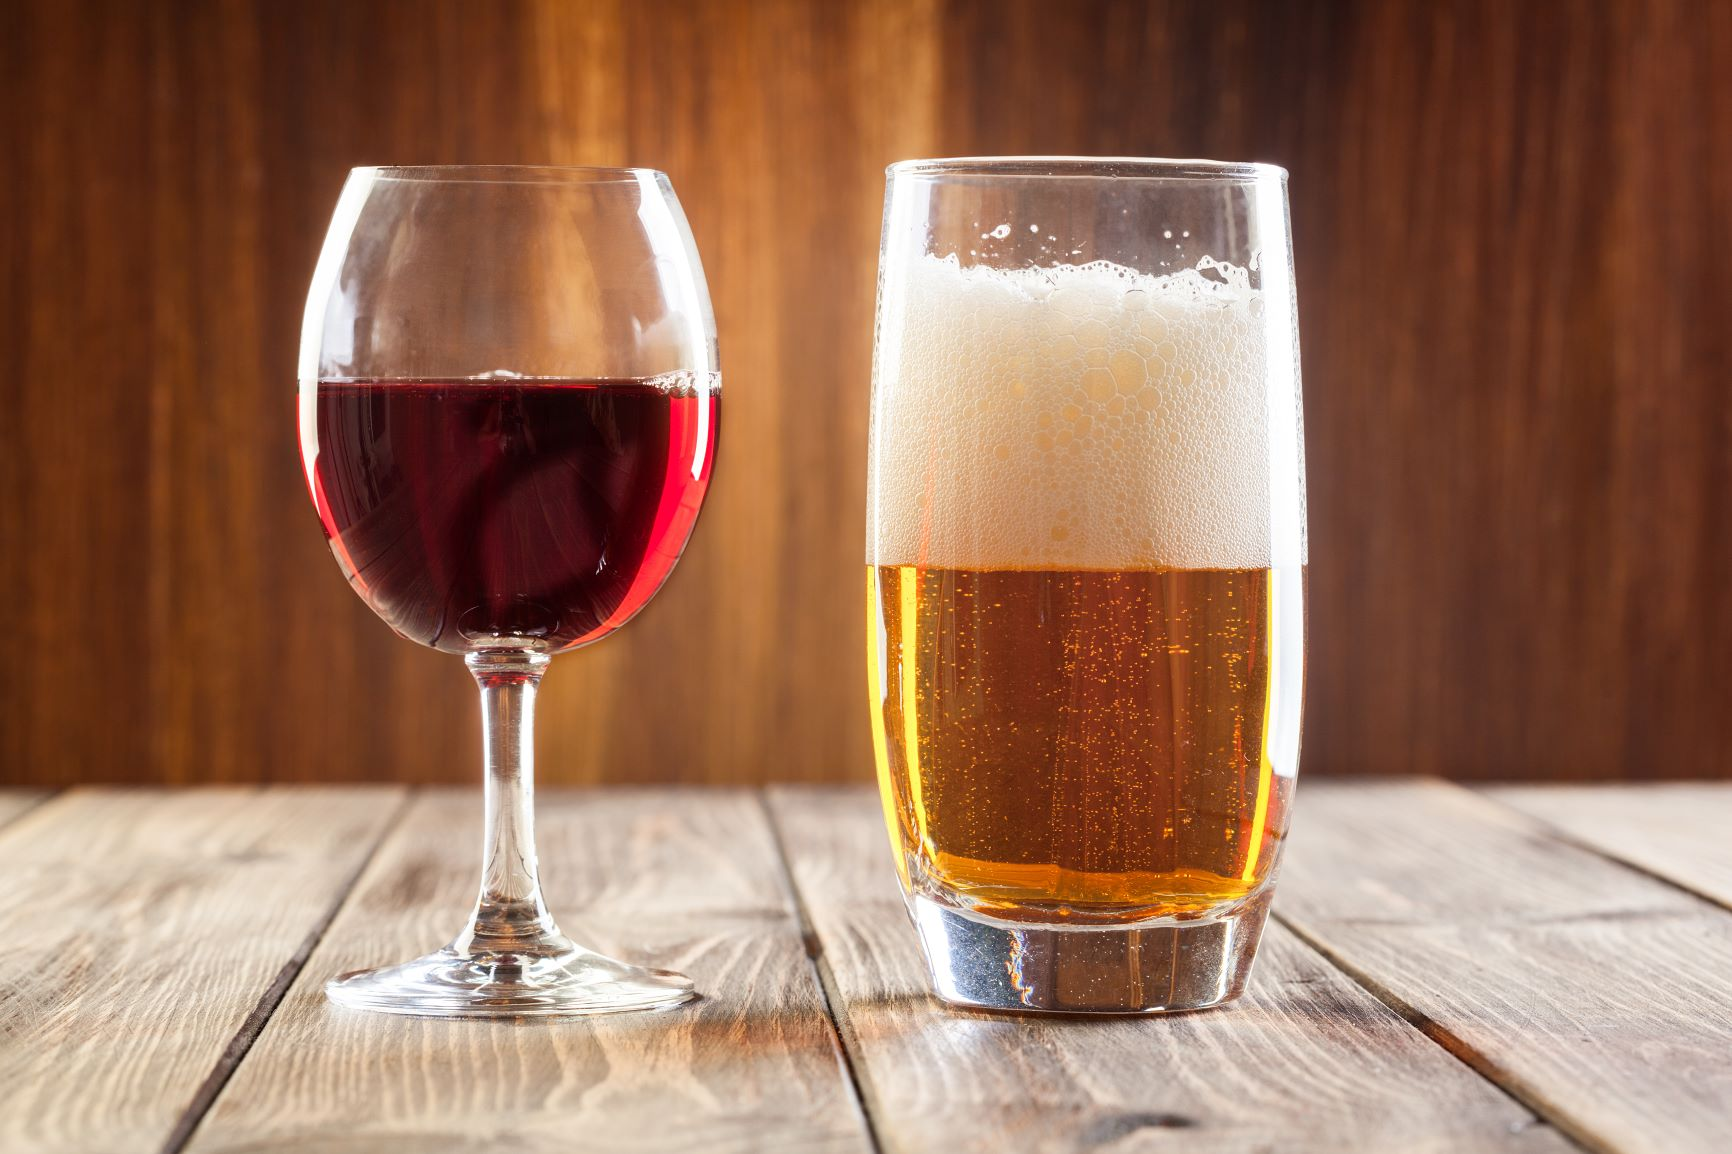 Changes to the Legal Framework for Beverage Alcohol in Ontario